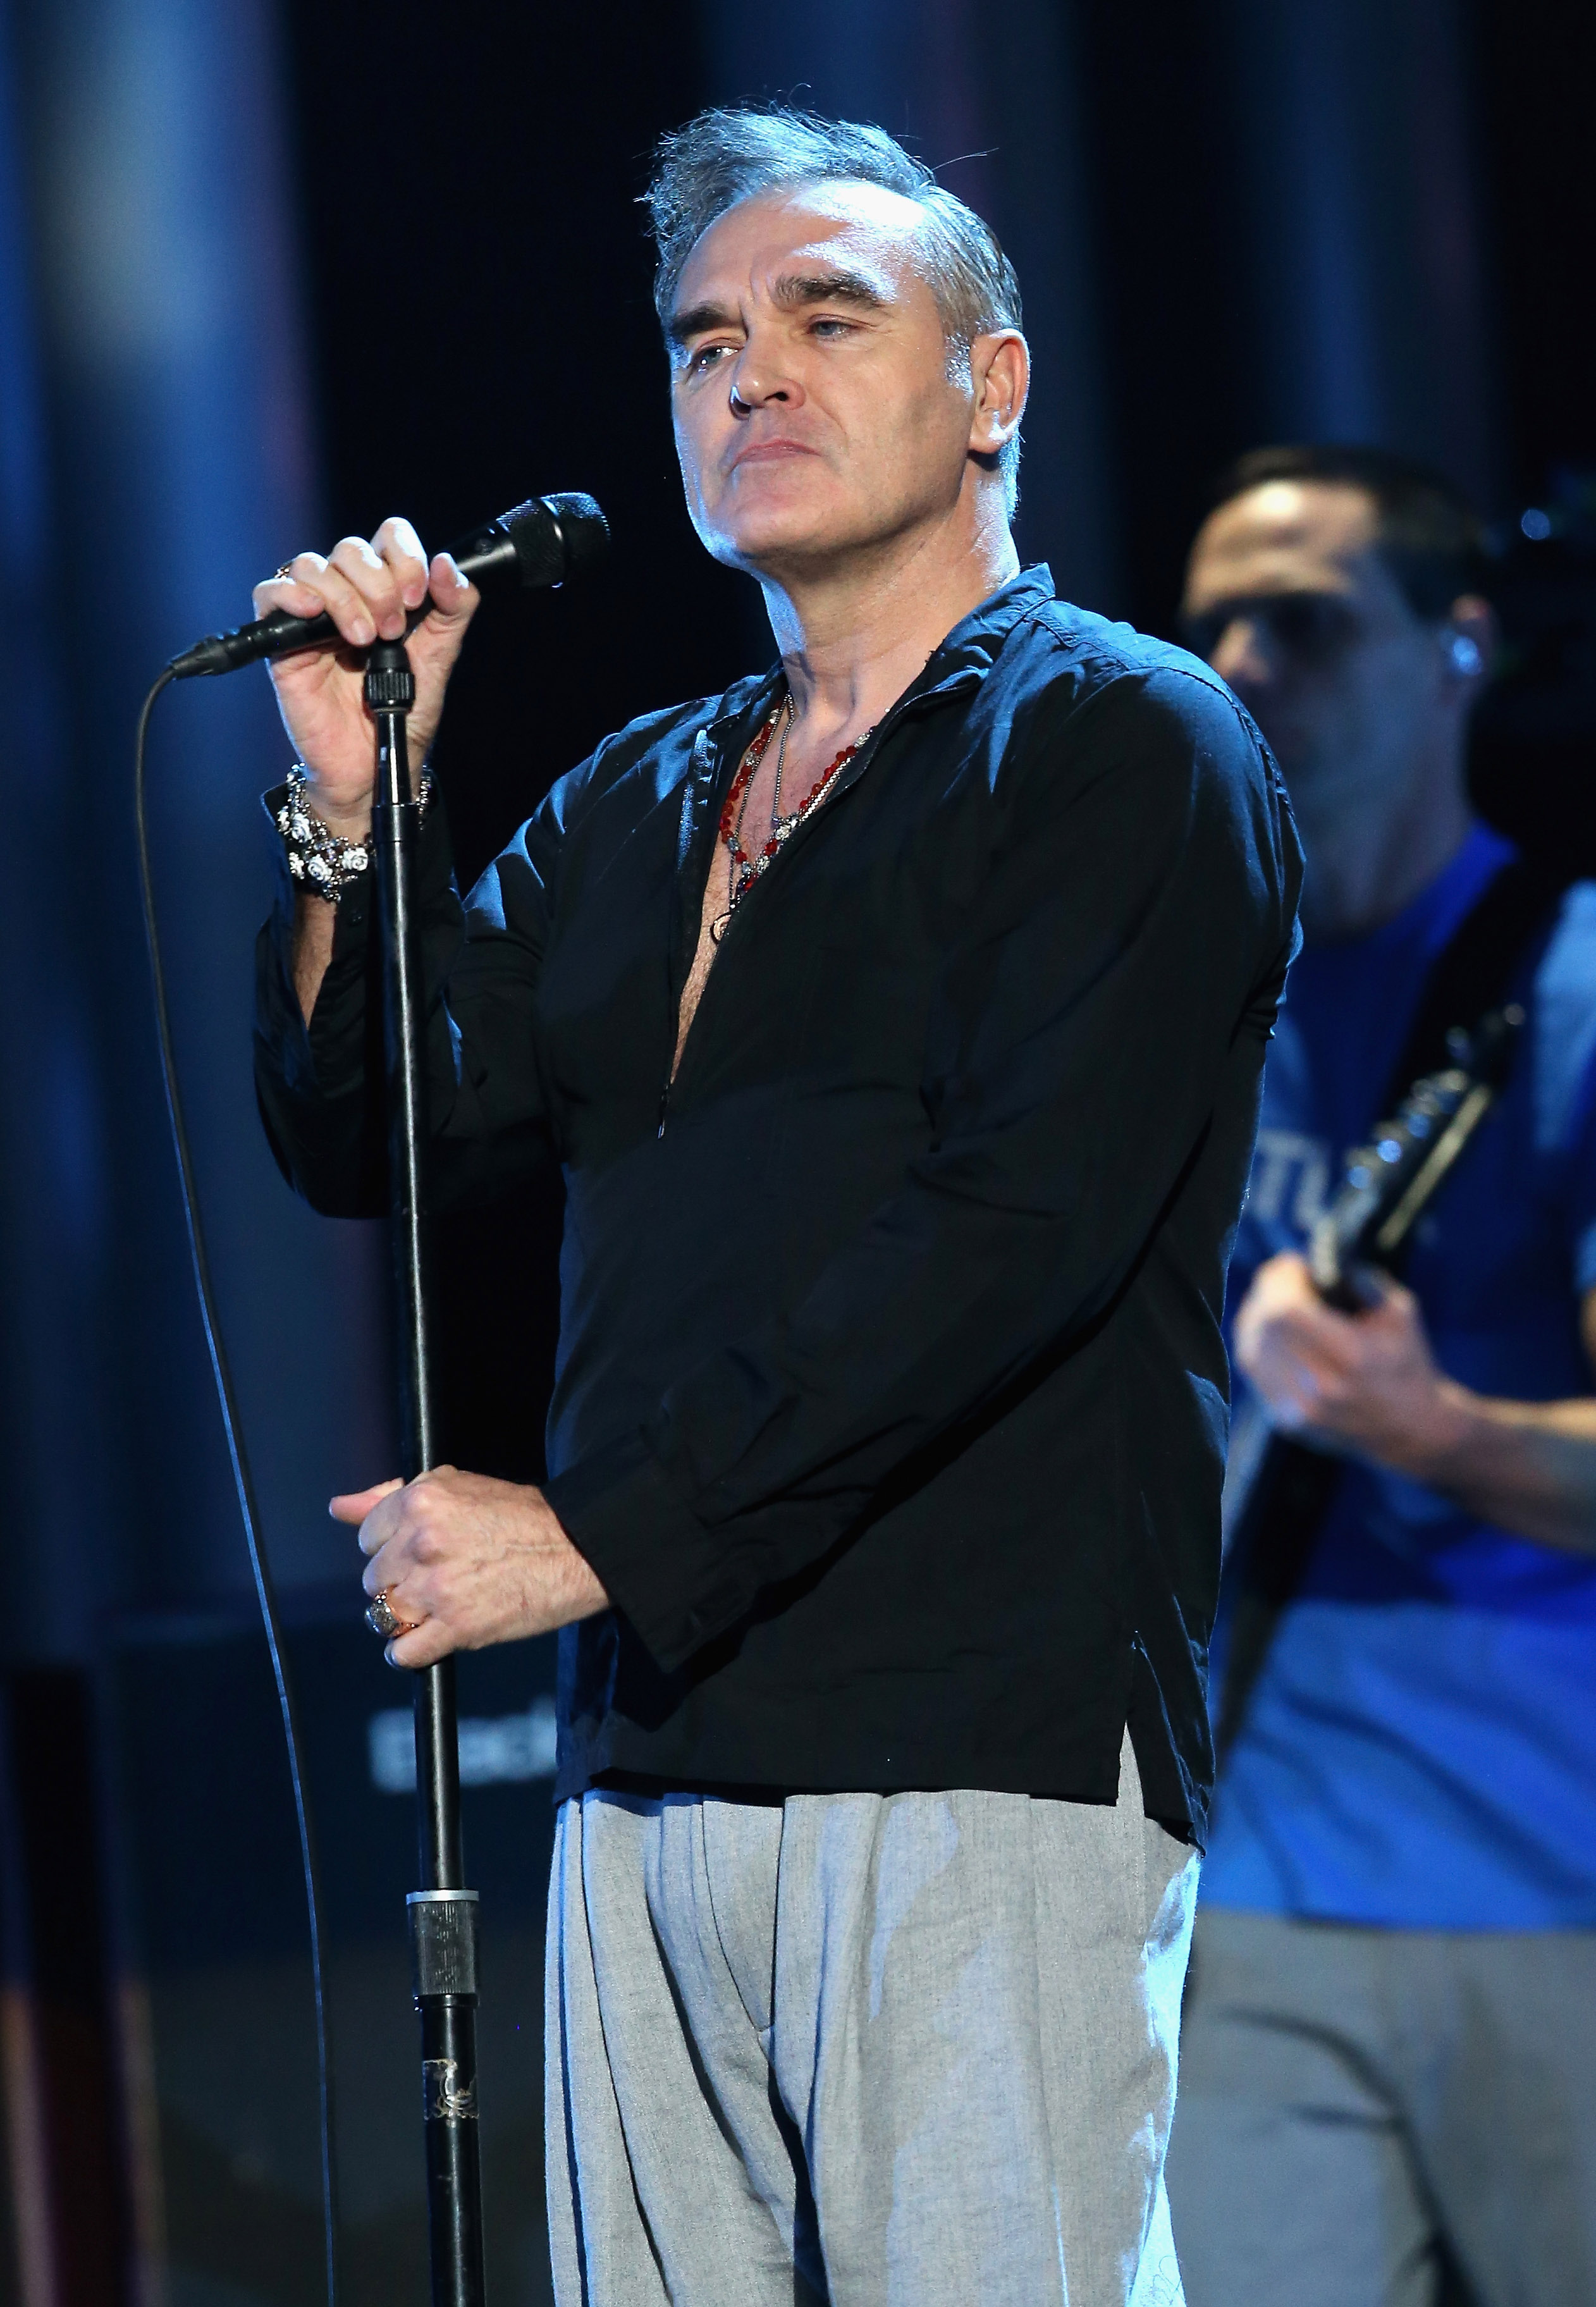 Singer Morrissey performs on stage during the 20th annual Nobel Peace Prize Concert at the Oslo Spektrum on Dec. 11, 2013 in Oslo.